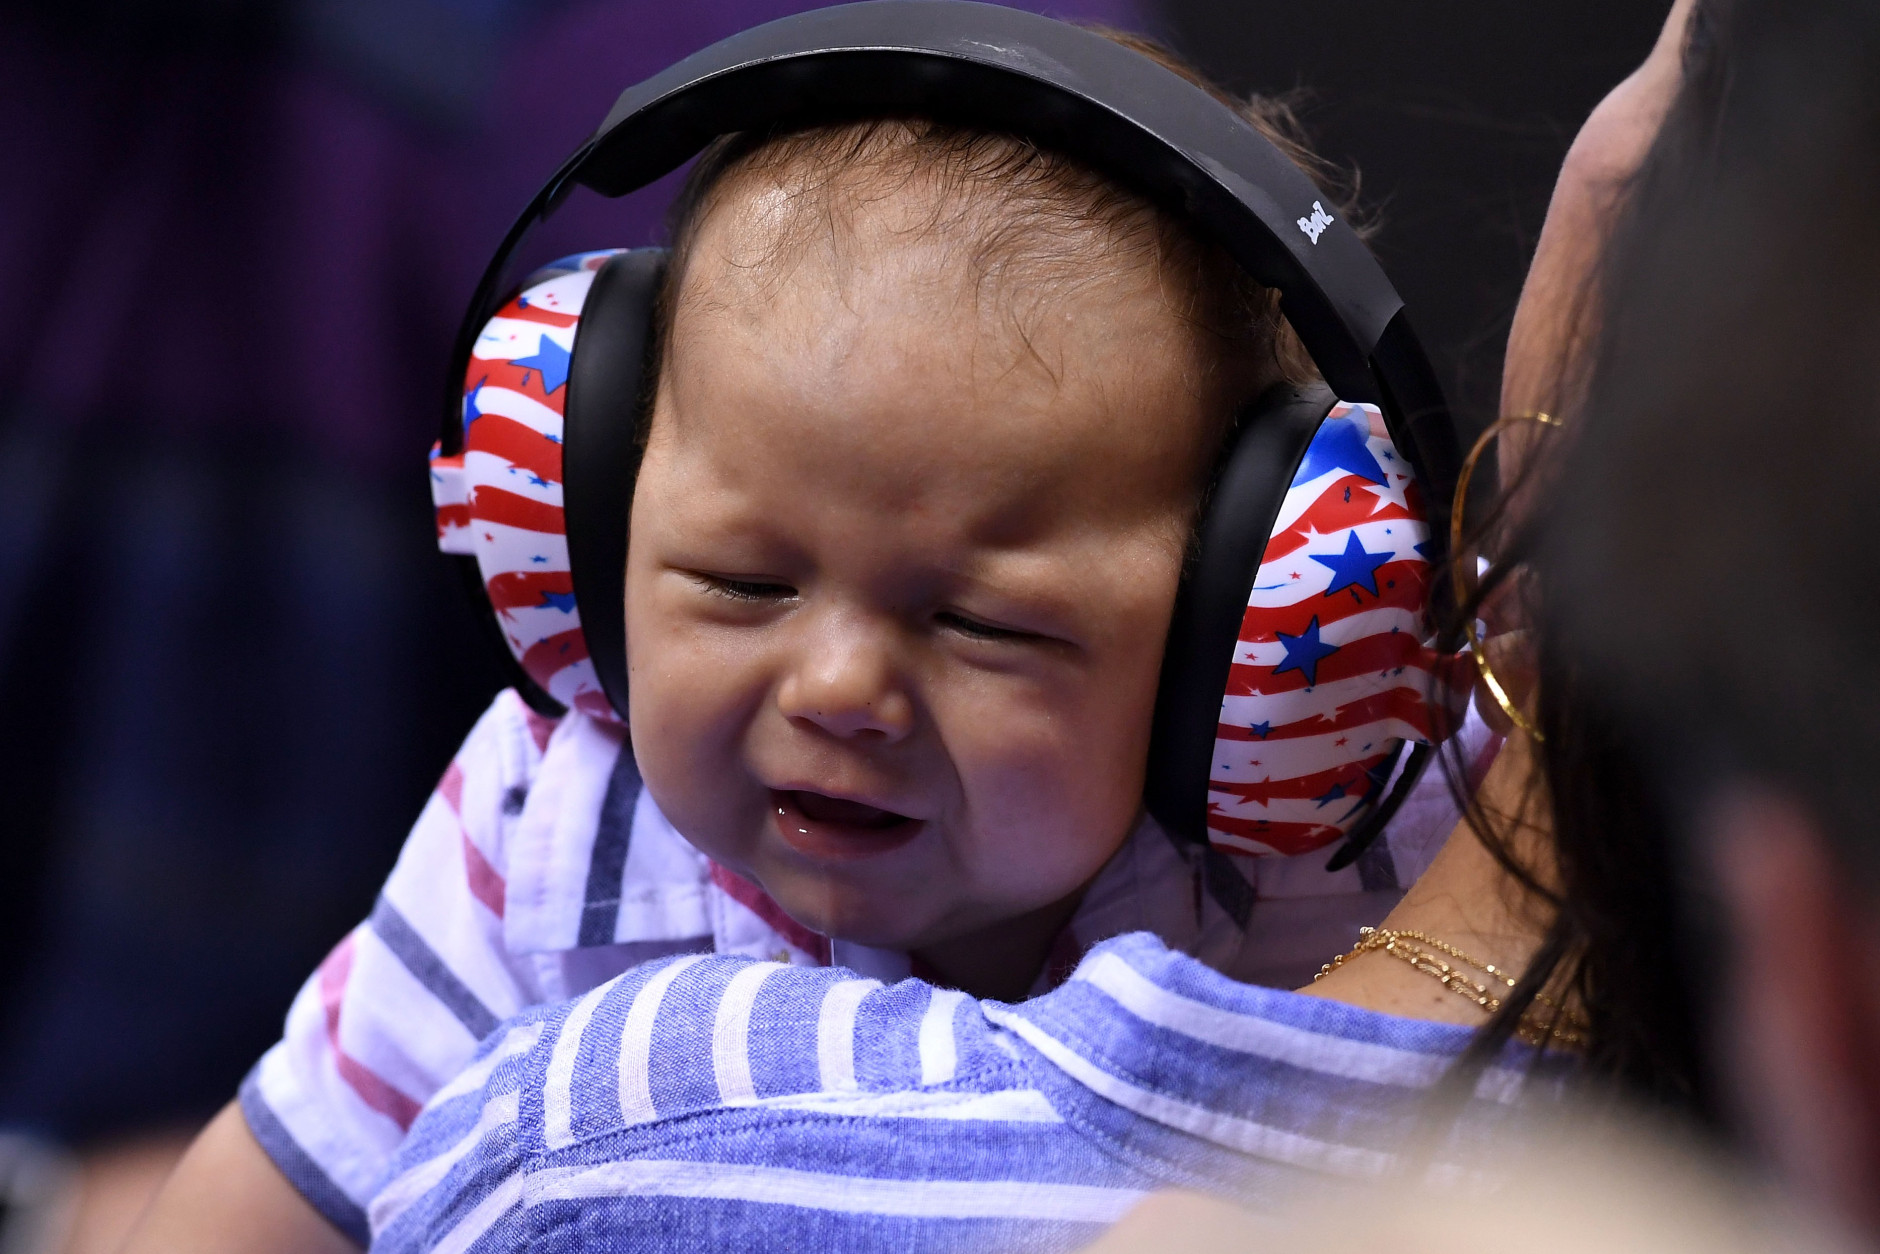 RIO DE JANEIRO, BRAZIL - AUGUST 09:  Boomer Phelps, the son of Michael Phelps of the United States, is seen on Day 4 of the Rio 2016 Olympic Games at the Olympic Aquatics Stadium on August 9, 2016 in Rio de Janeiro, Brazil.  (Photo by David Ramos/Getty Images)